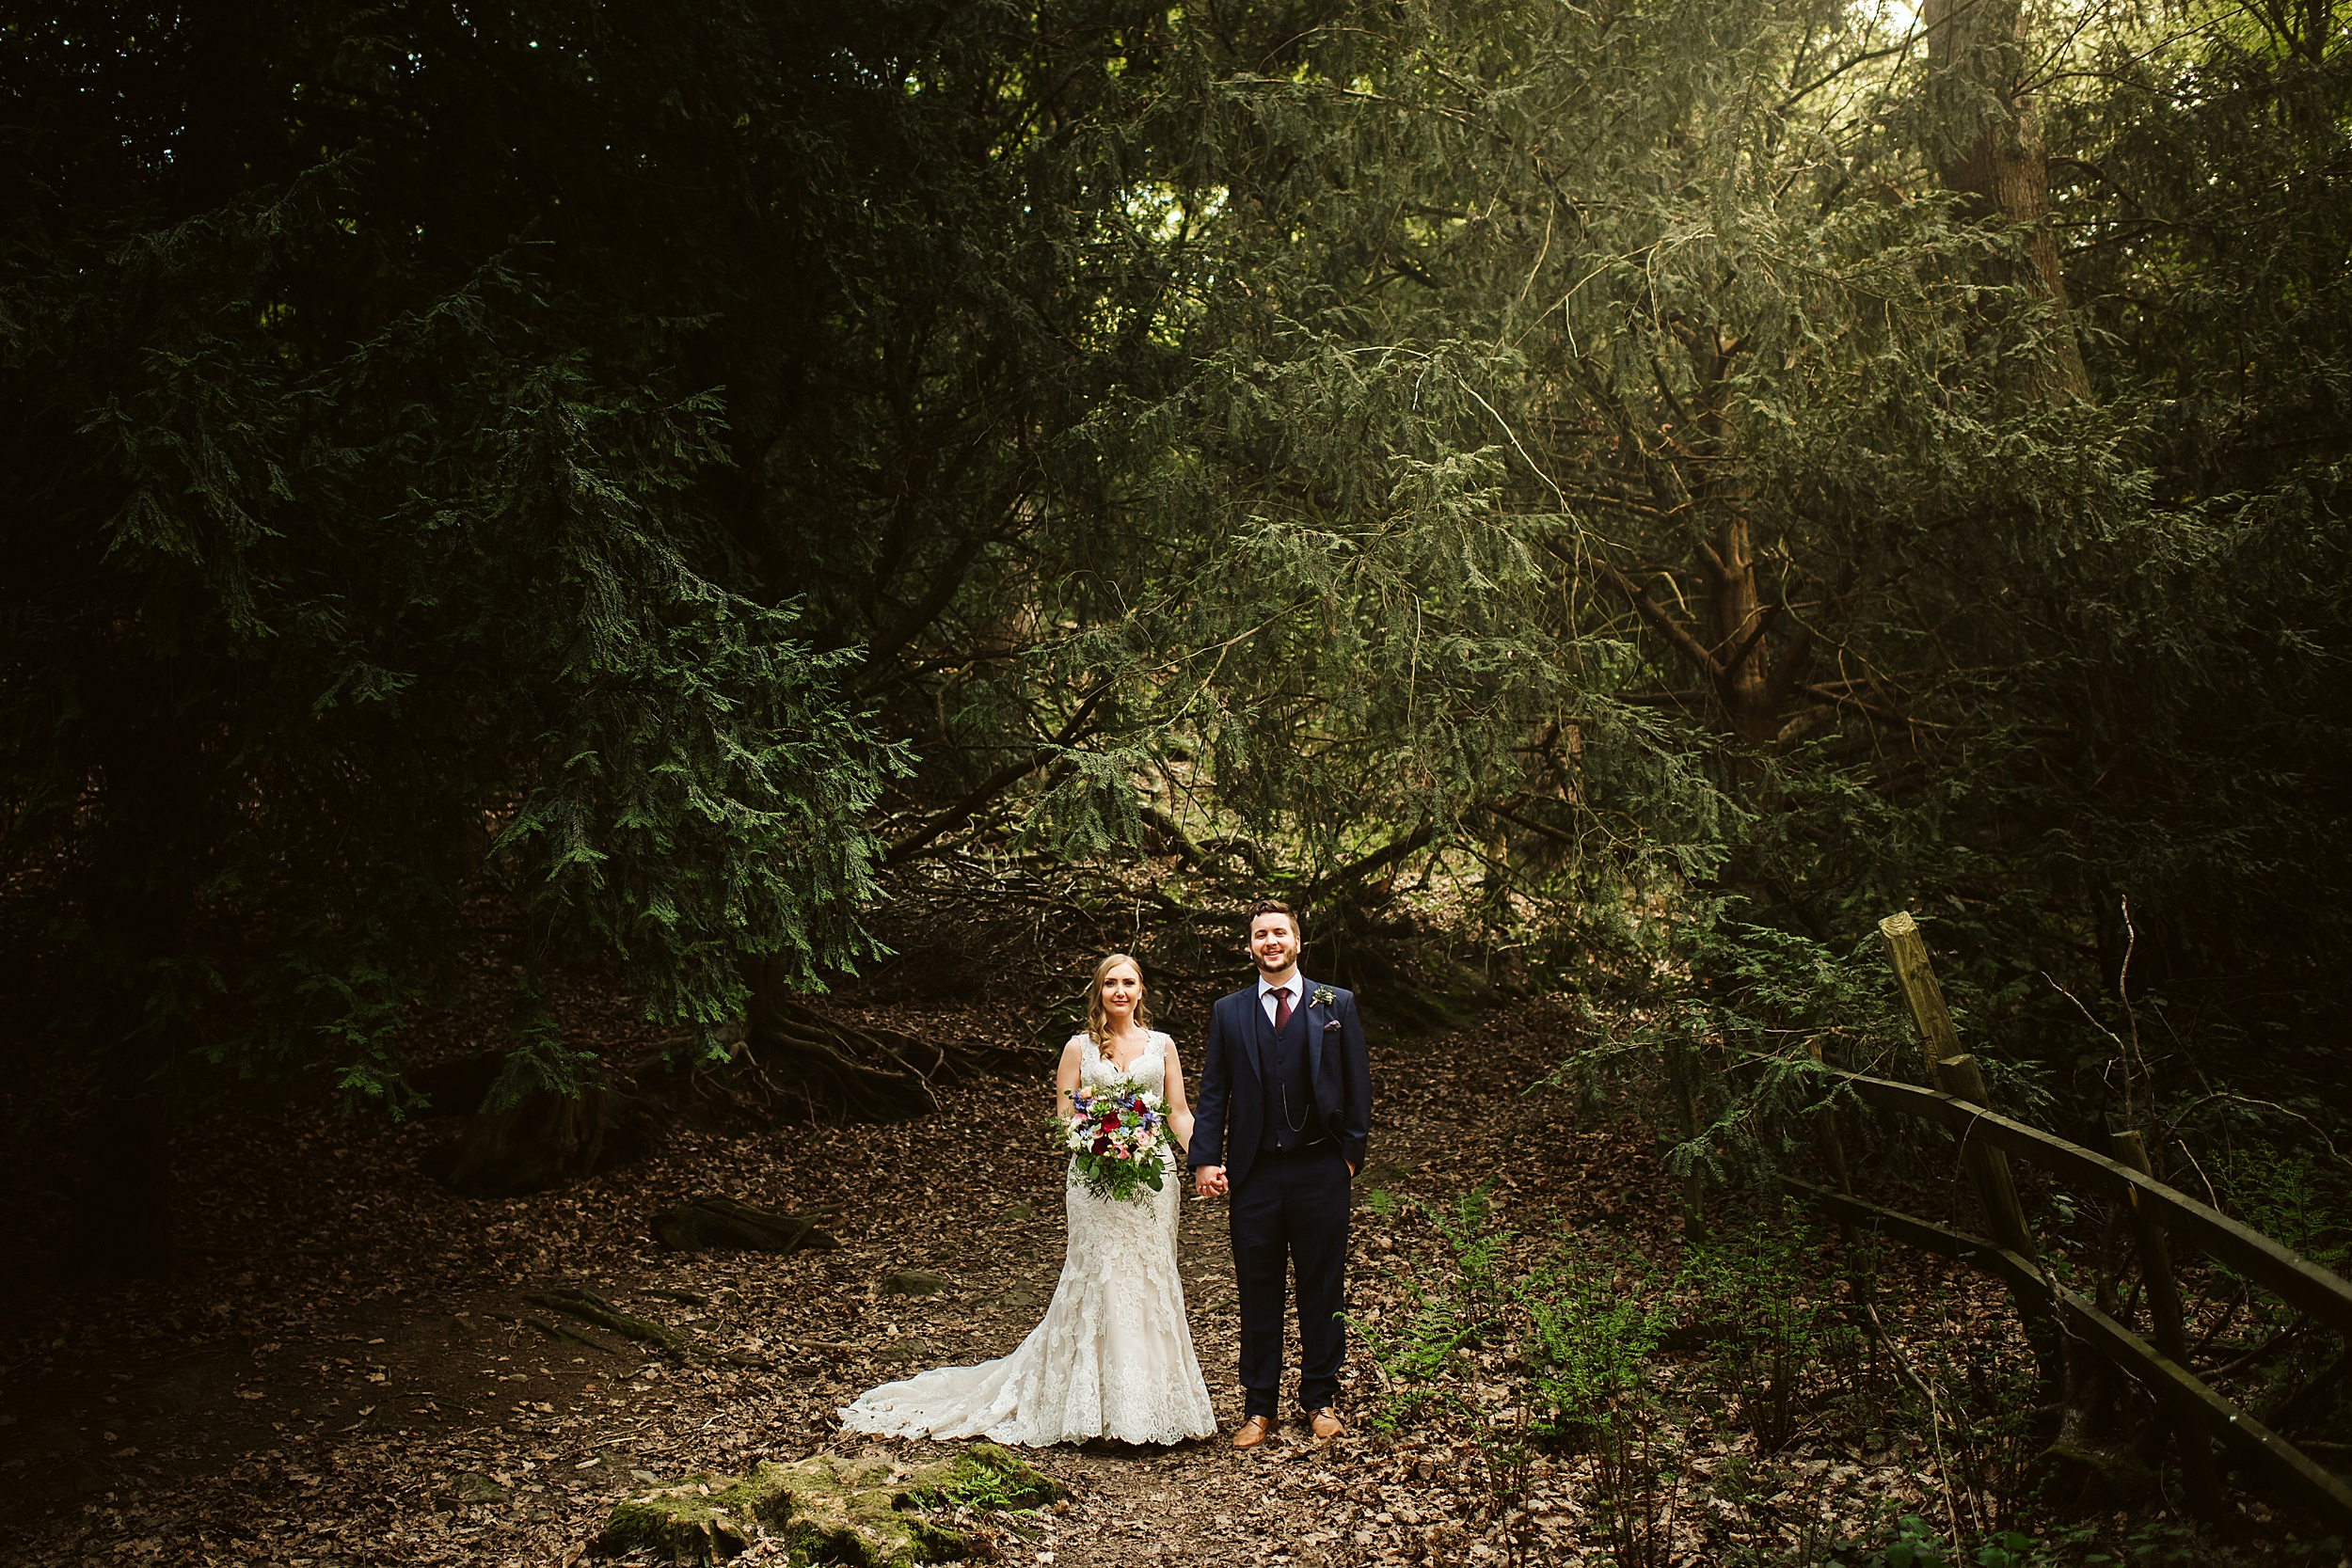 Peckforton_Castle_Cheshire_Toronto_Wedding_Photographer_UK_Destination_Wedding_0080.jpg